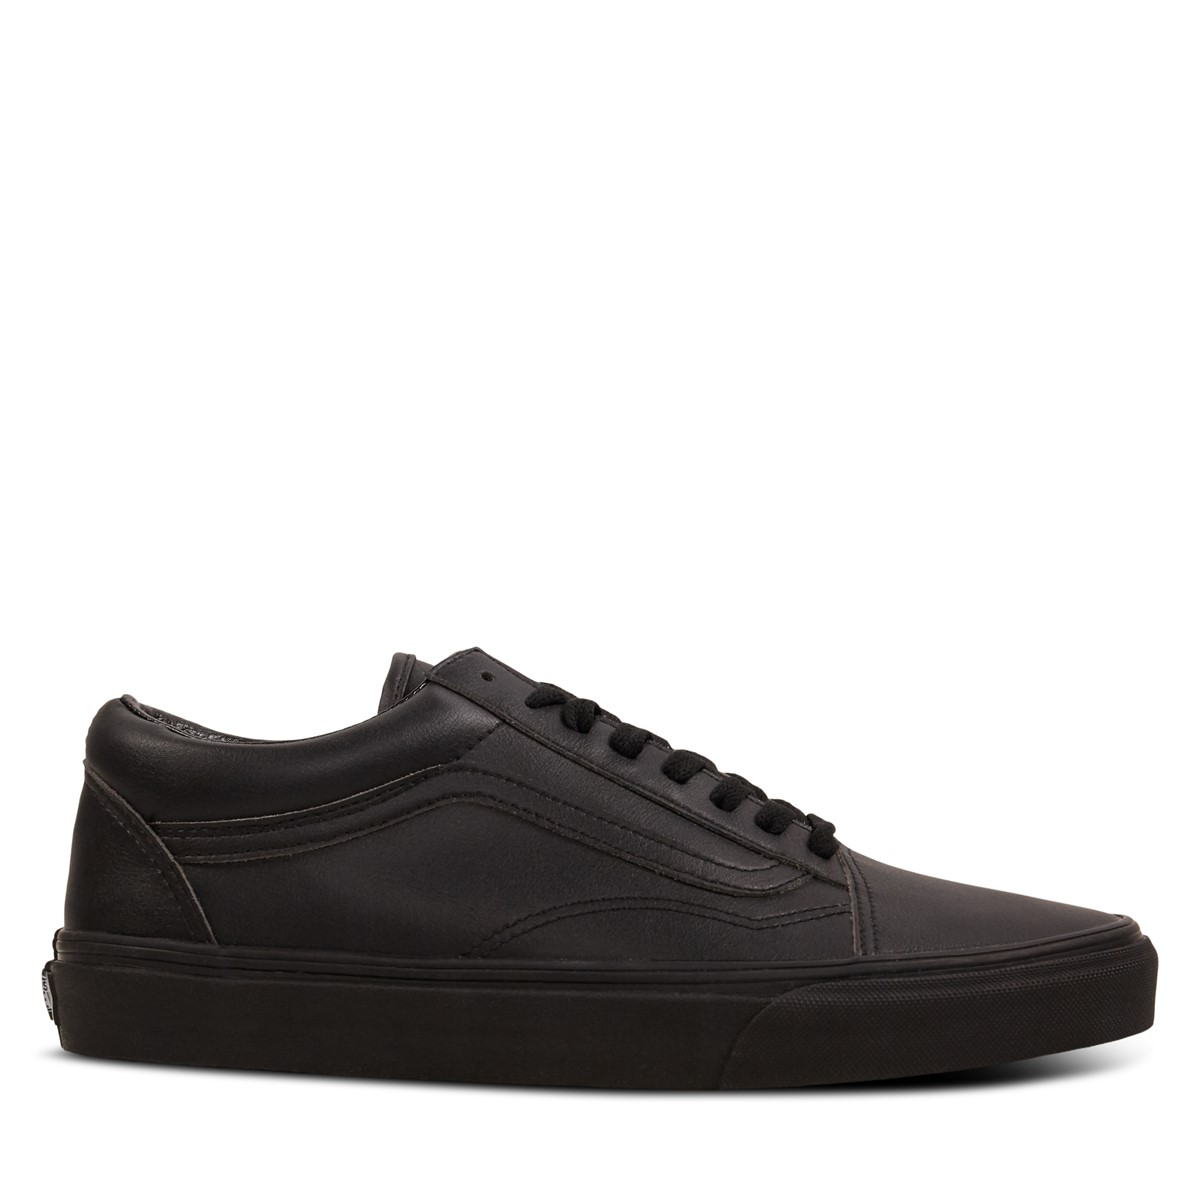 Men's Old Skool Leather Sneakers in Black